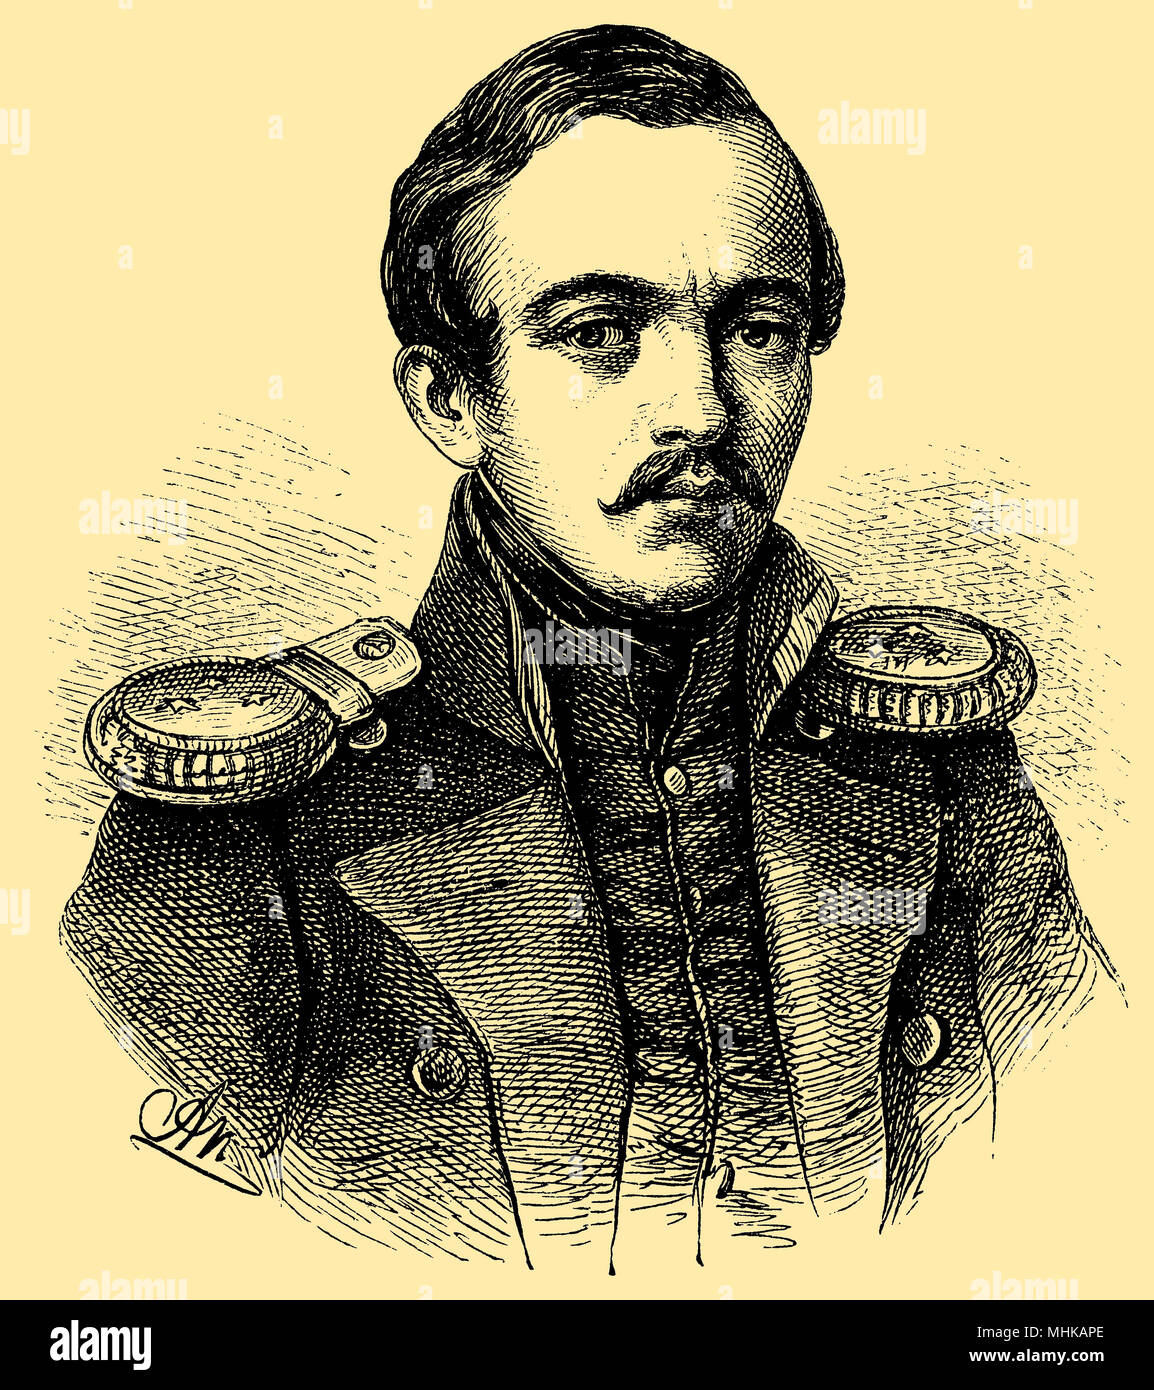 Biography of Mikhail Yuryevich Lermontov. The life and work of Lermontov 65